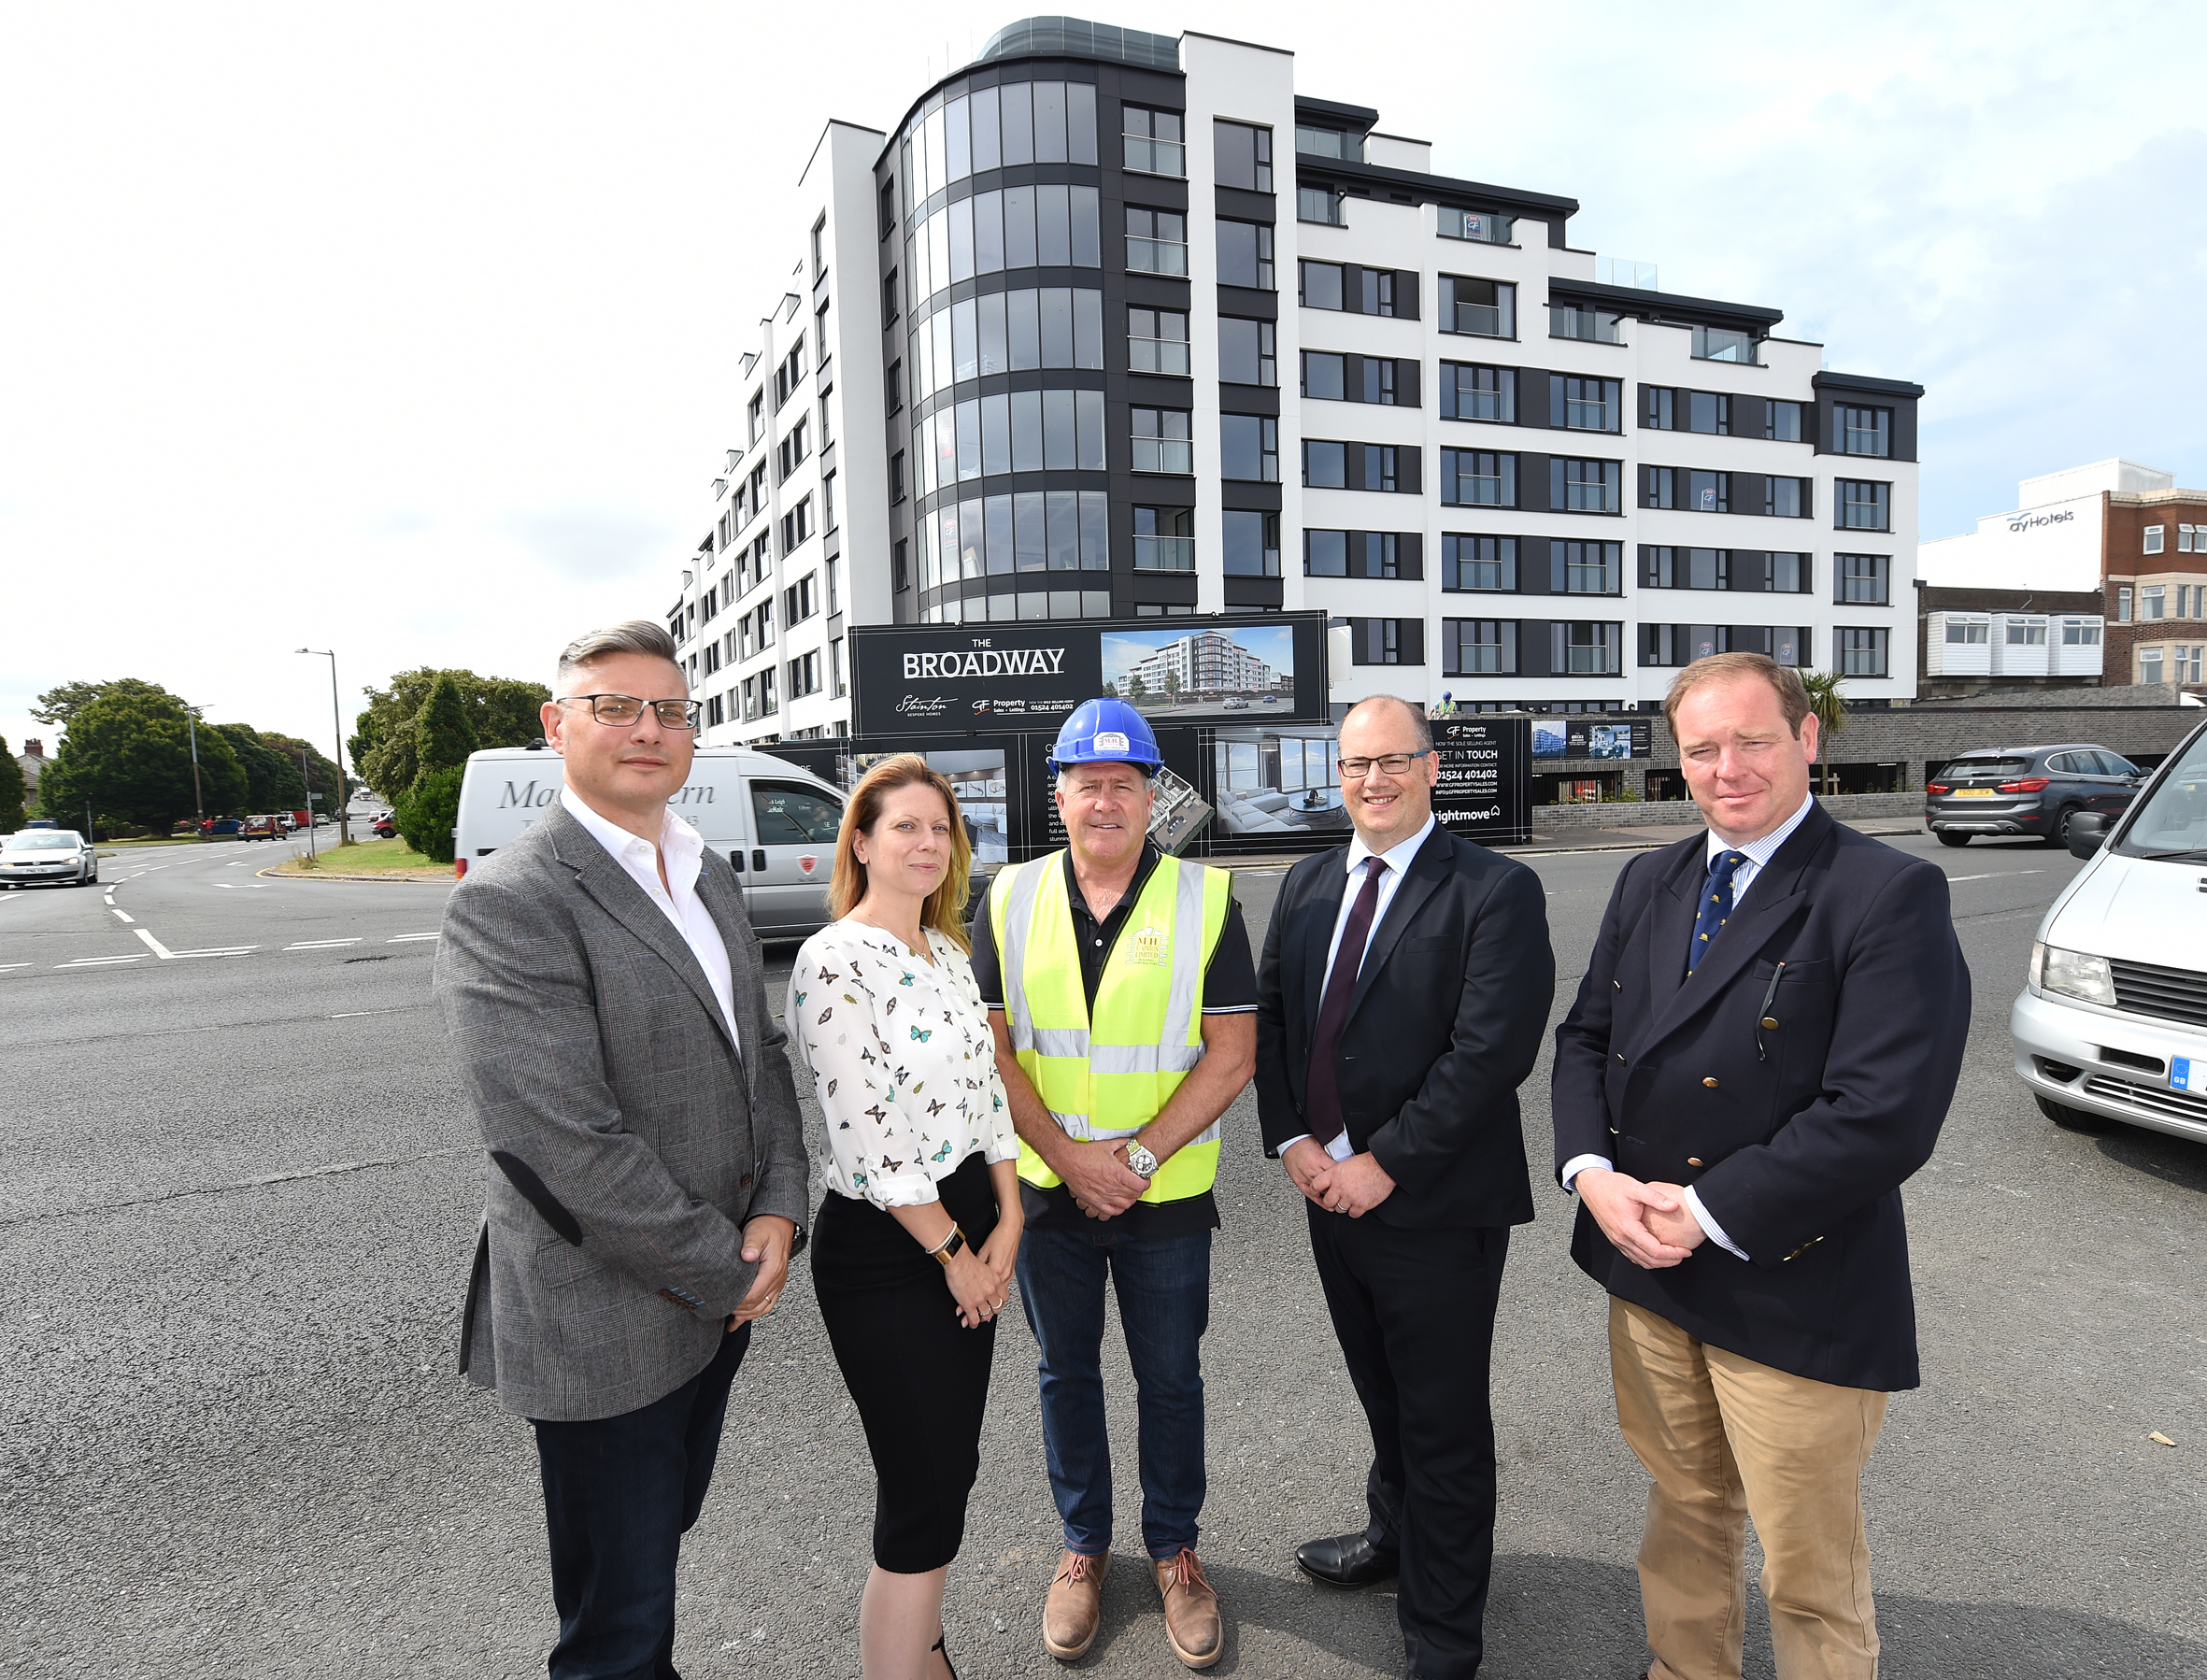 New multi-million pound residential development unveiled in Morecambe